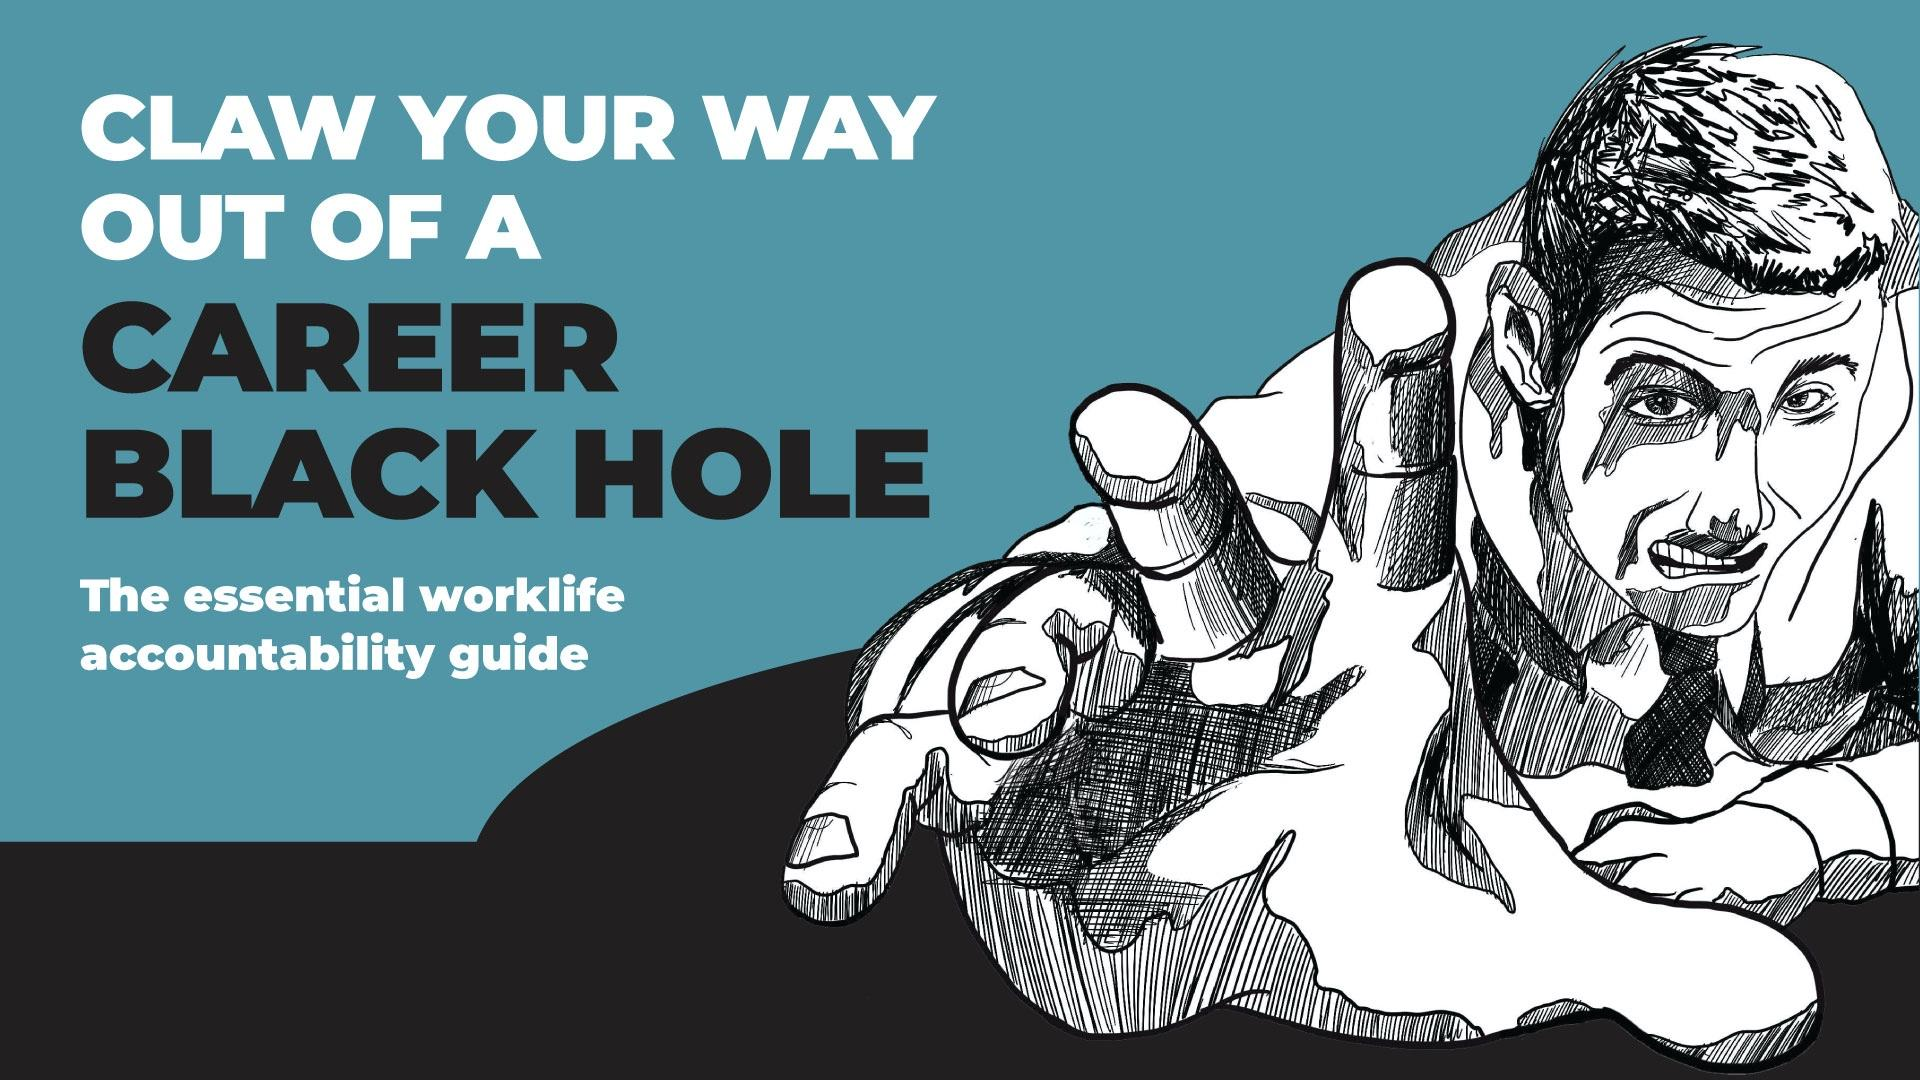 claw your way out of a career black hole